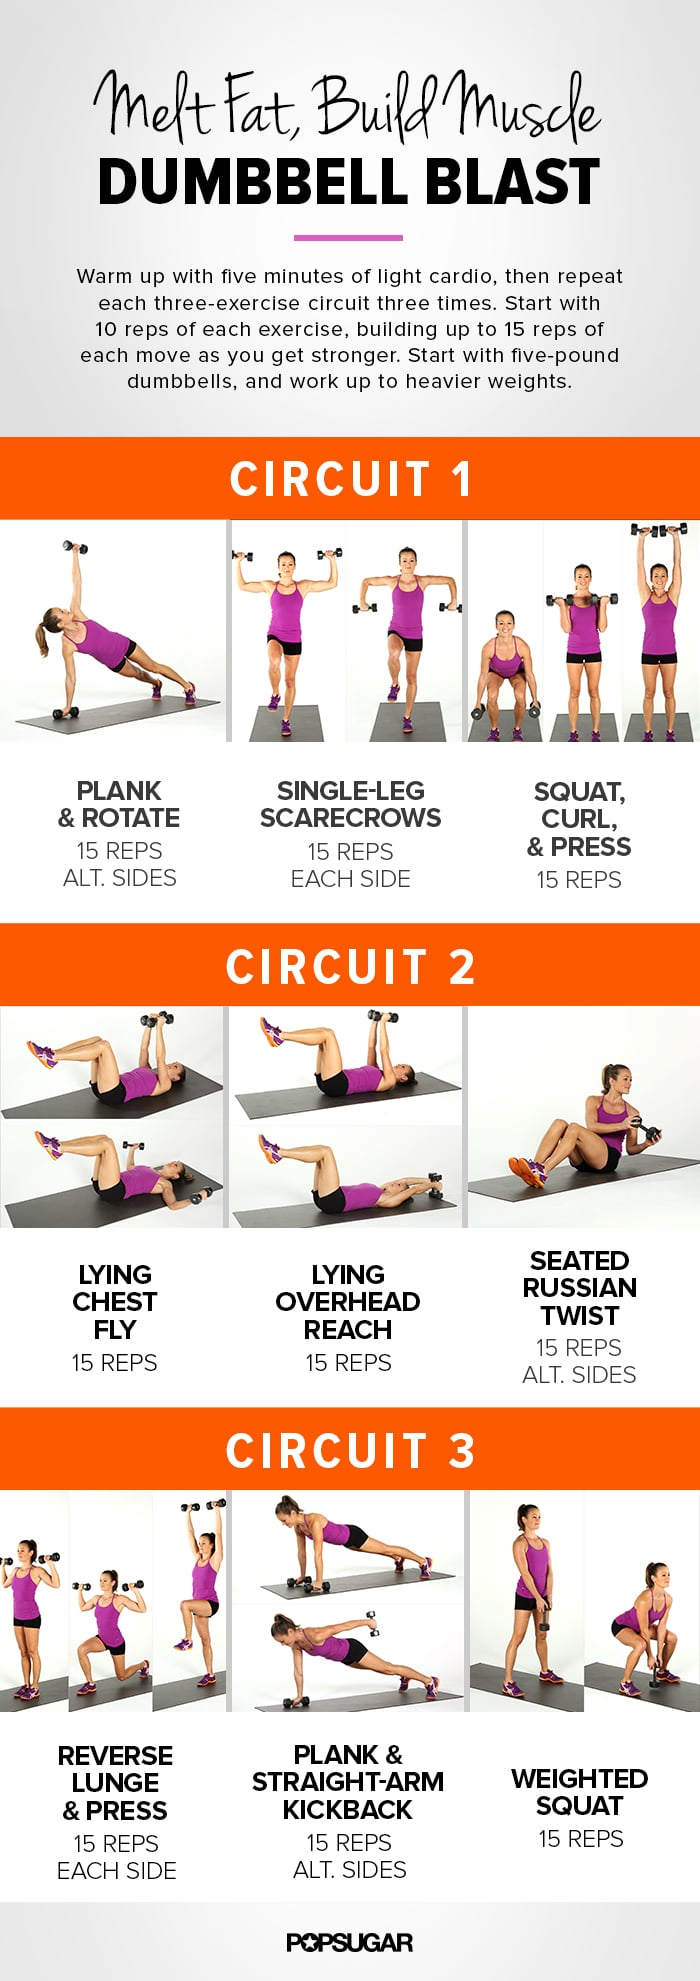 Full body dumbbell workout popsugar fitness australia nvjuhfo Choice Image